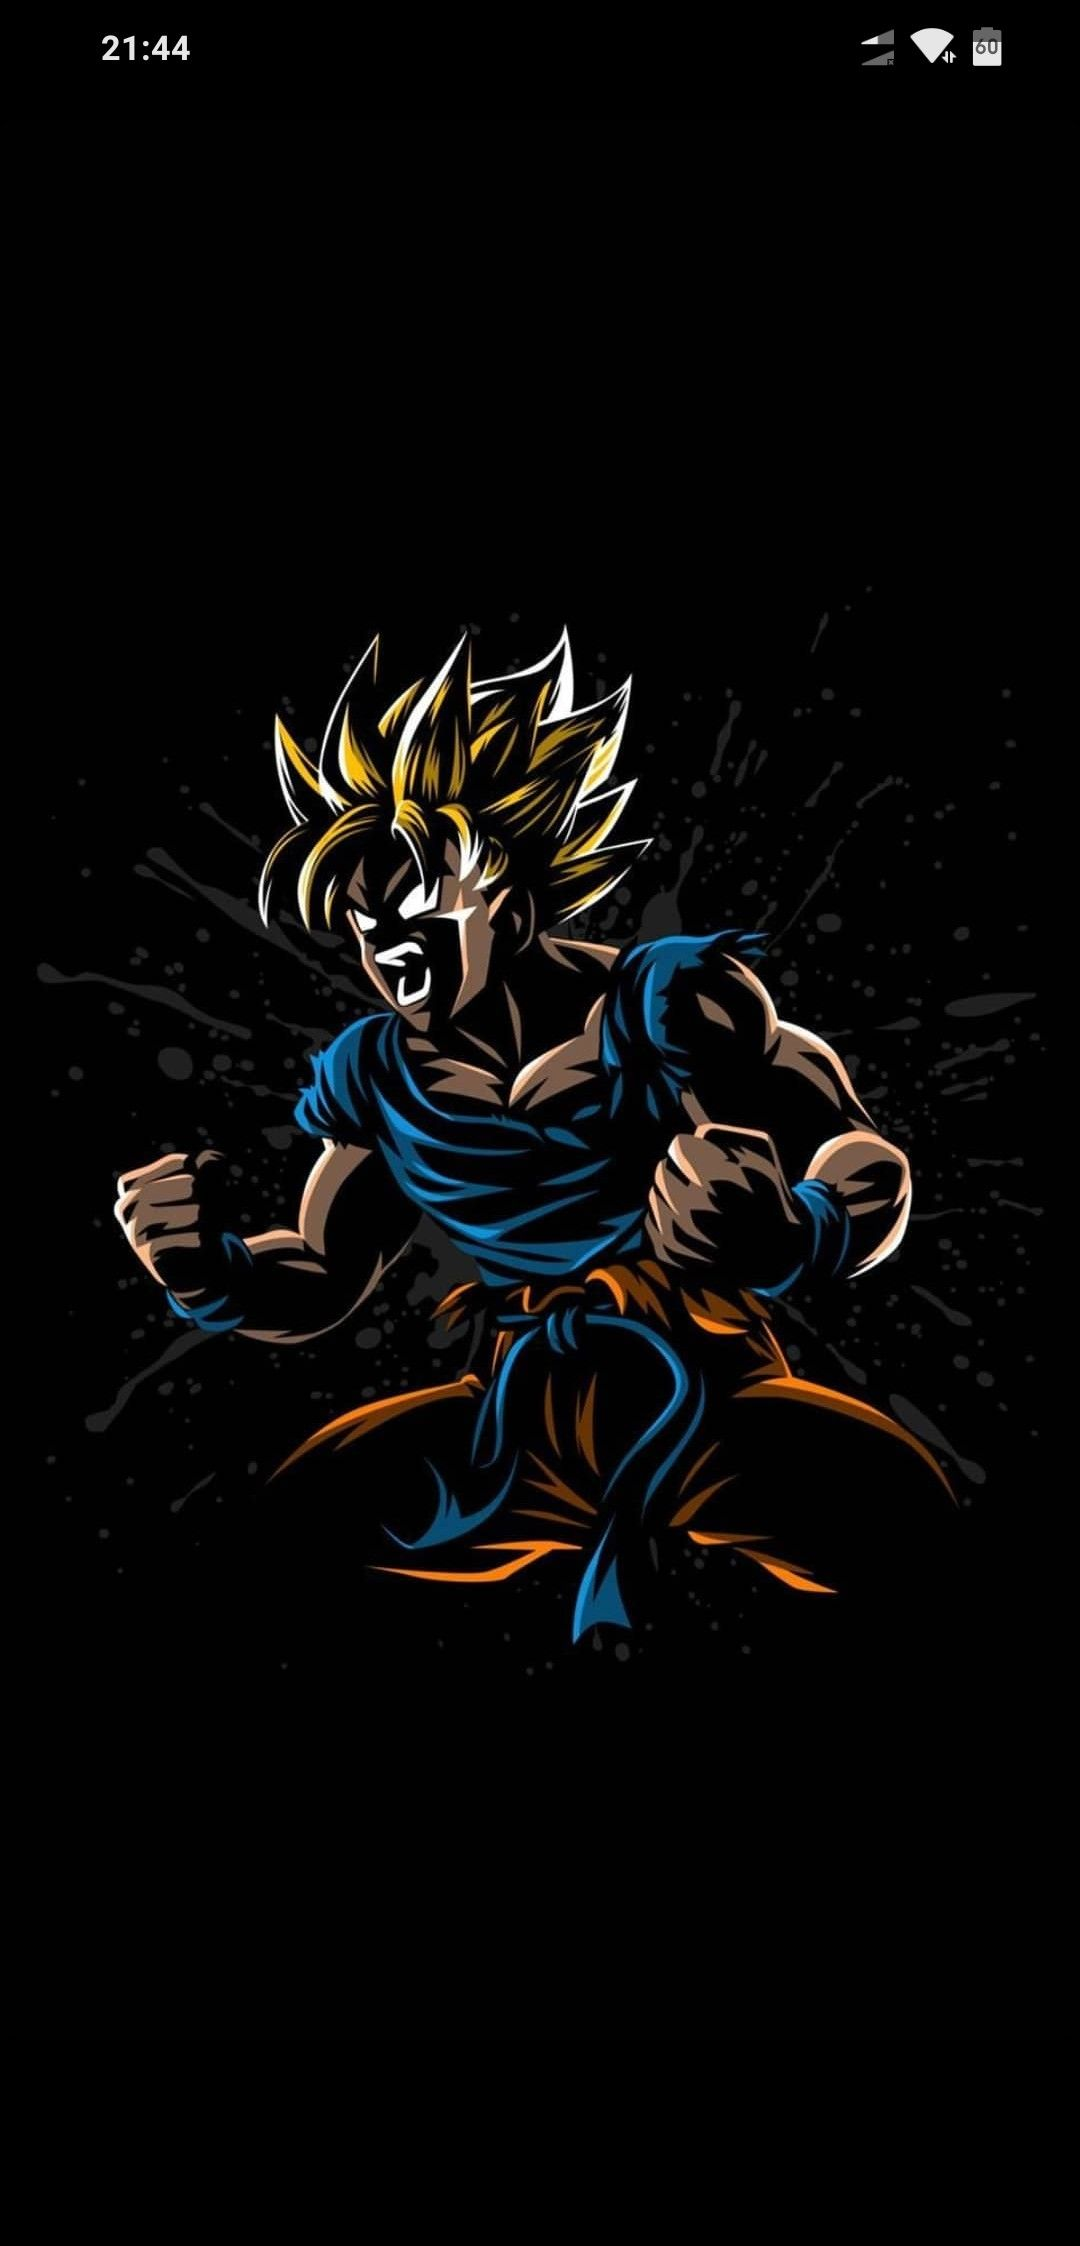 Attitude, Vegito, Dragon Ball Super, blue hair, 720x1280